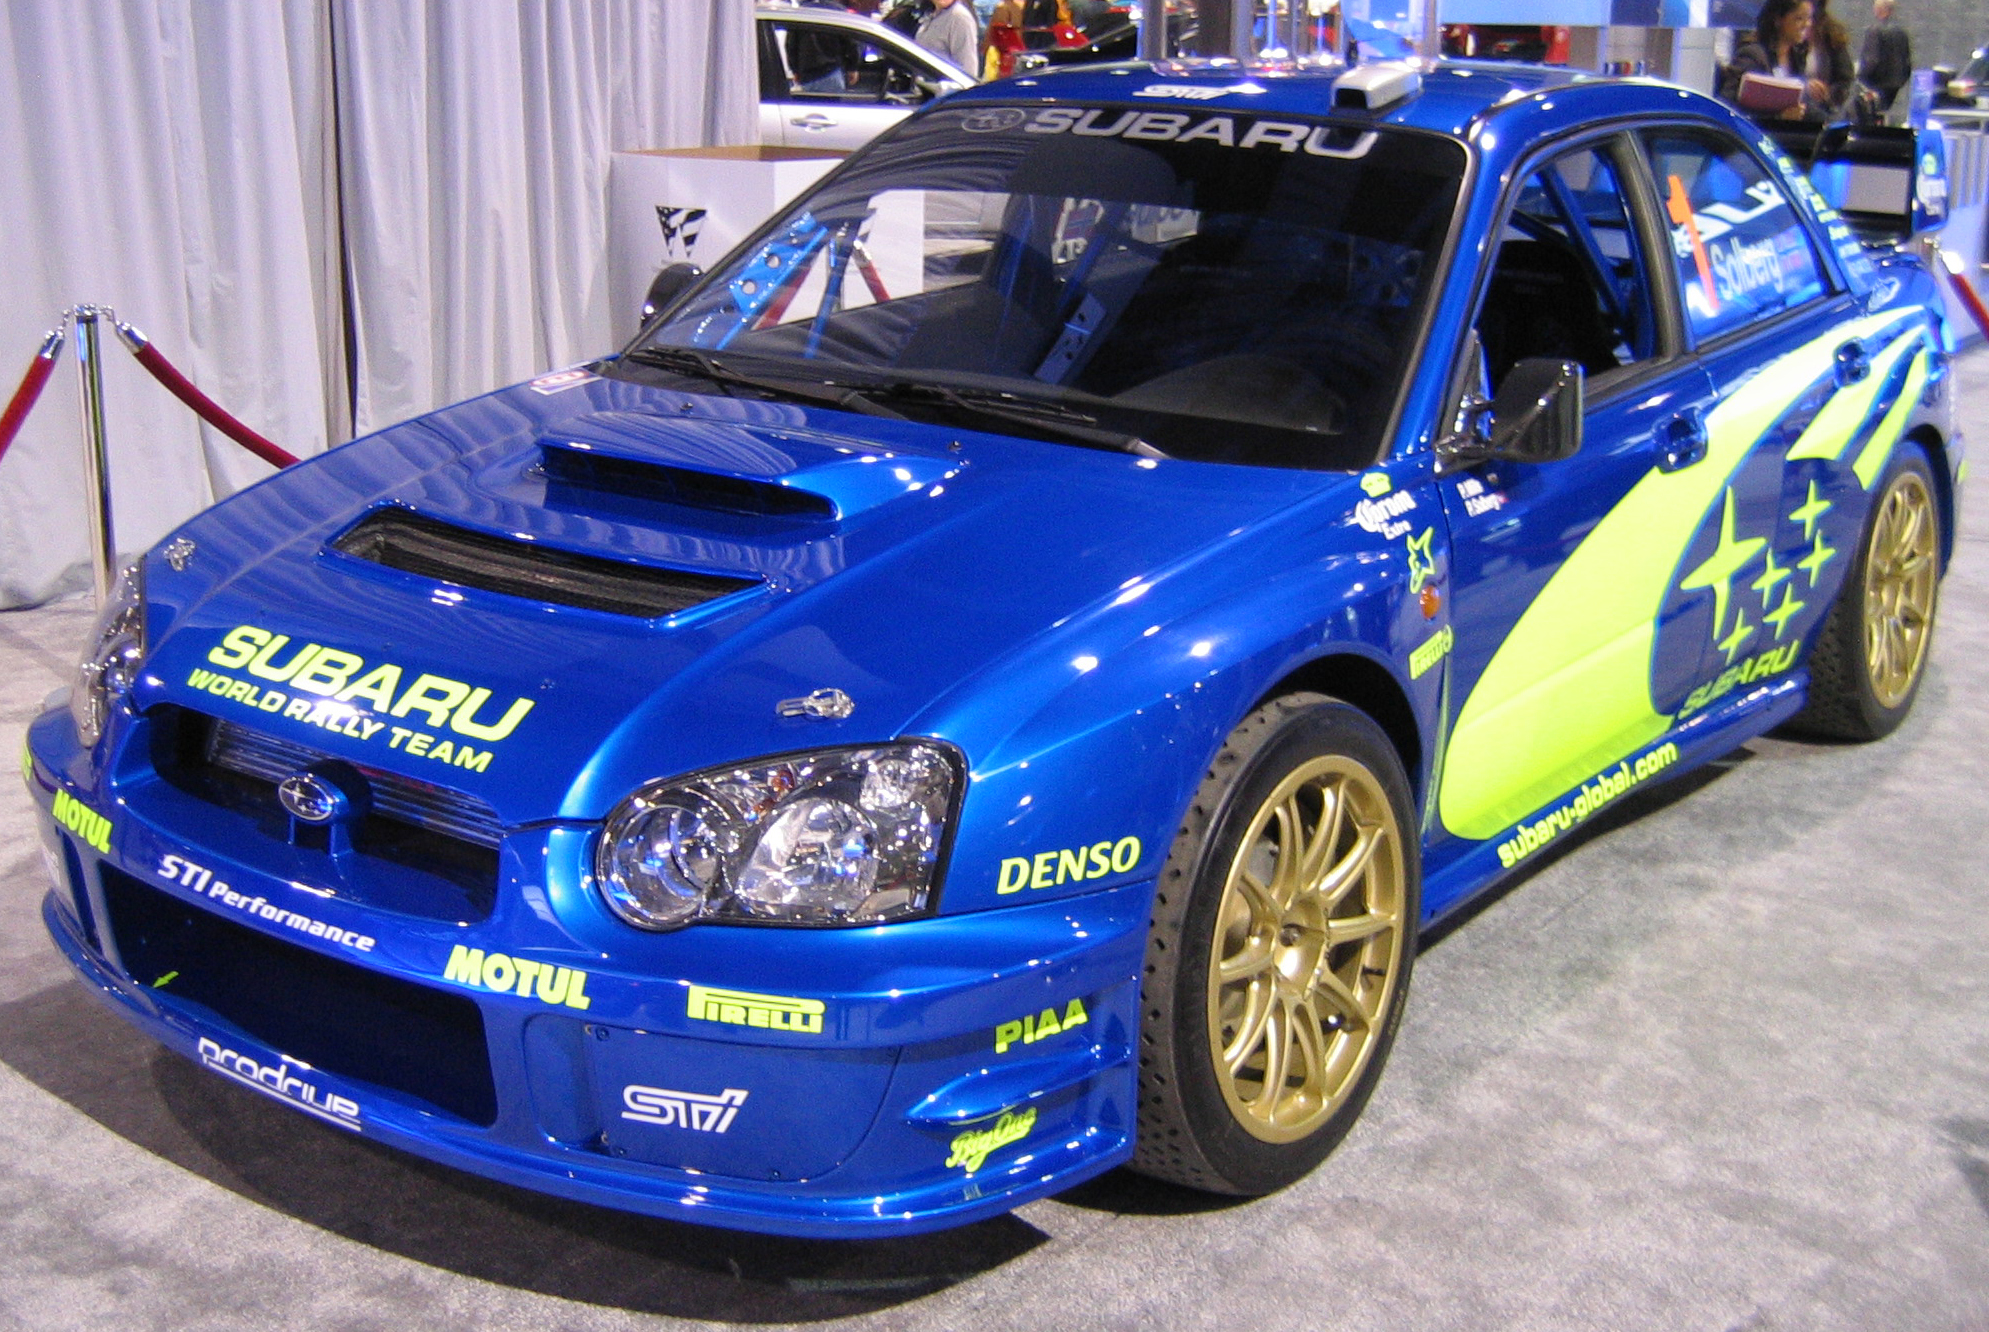 fast and furious subaru impreza wrx with File Washauto06 Subaru Impreza on Watch besides Cool Car Backgrounds besides Mitsubishi Lancer Evolution Fast And Furious together with Modp 1003 1998 Subaru Impreza 25rs Coupe furthermore GREENLIGHT86220.